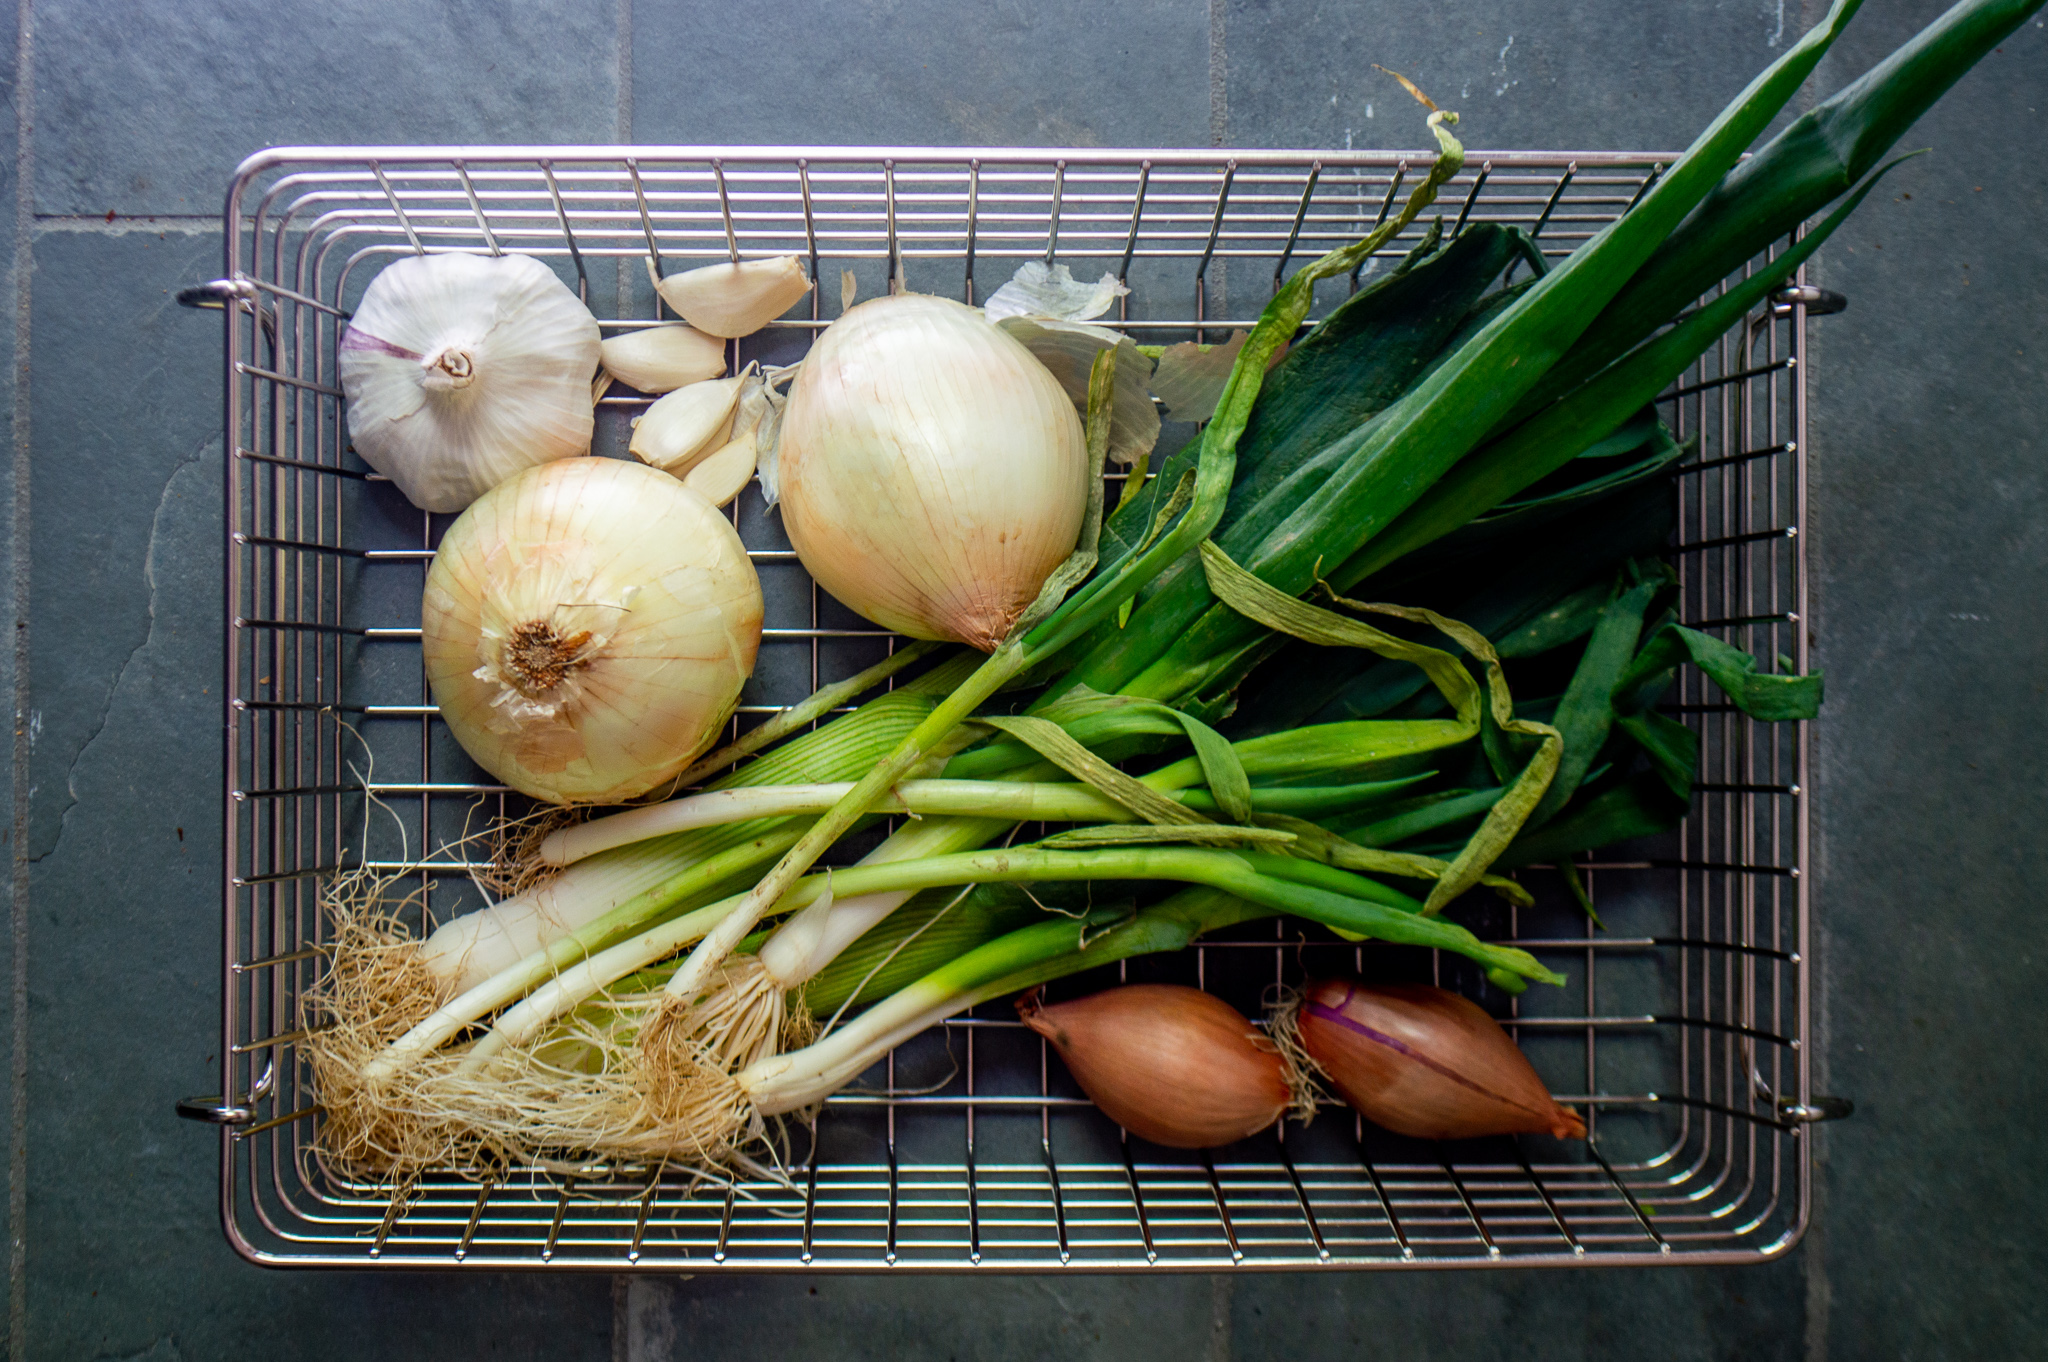 ALLIUMS  - Onions, garlic, leeks, shallots, green garlic, garlic scapes, scallions and more...